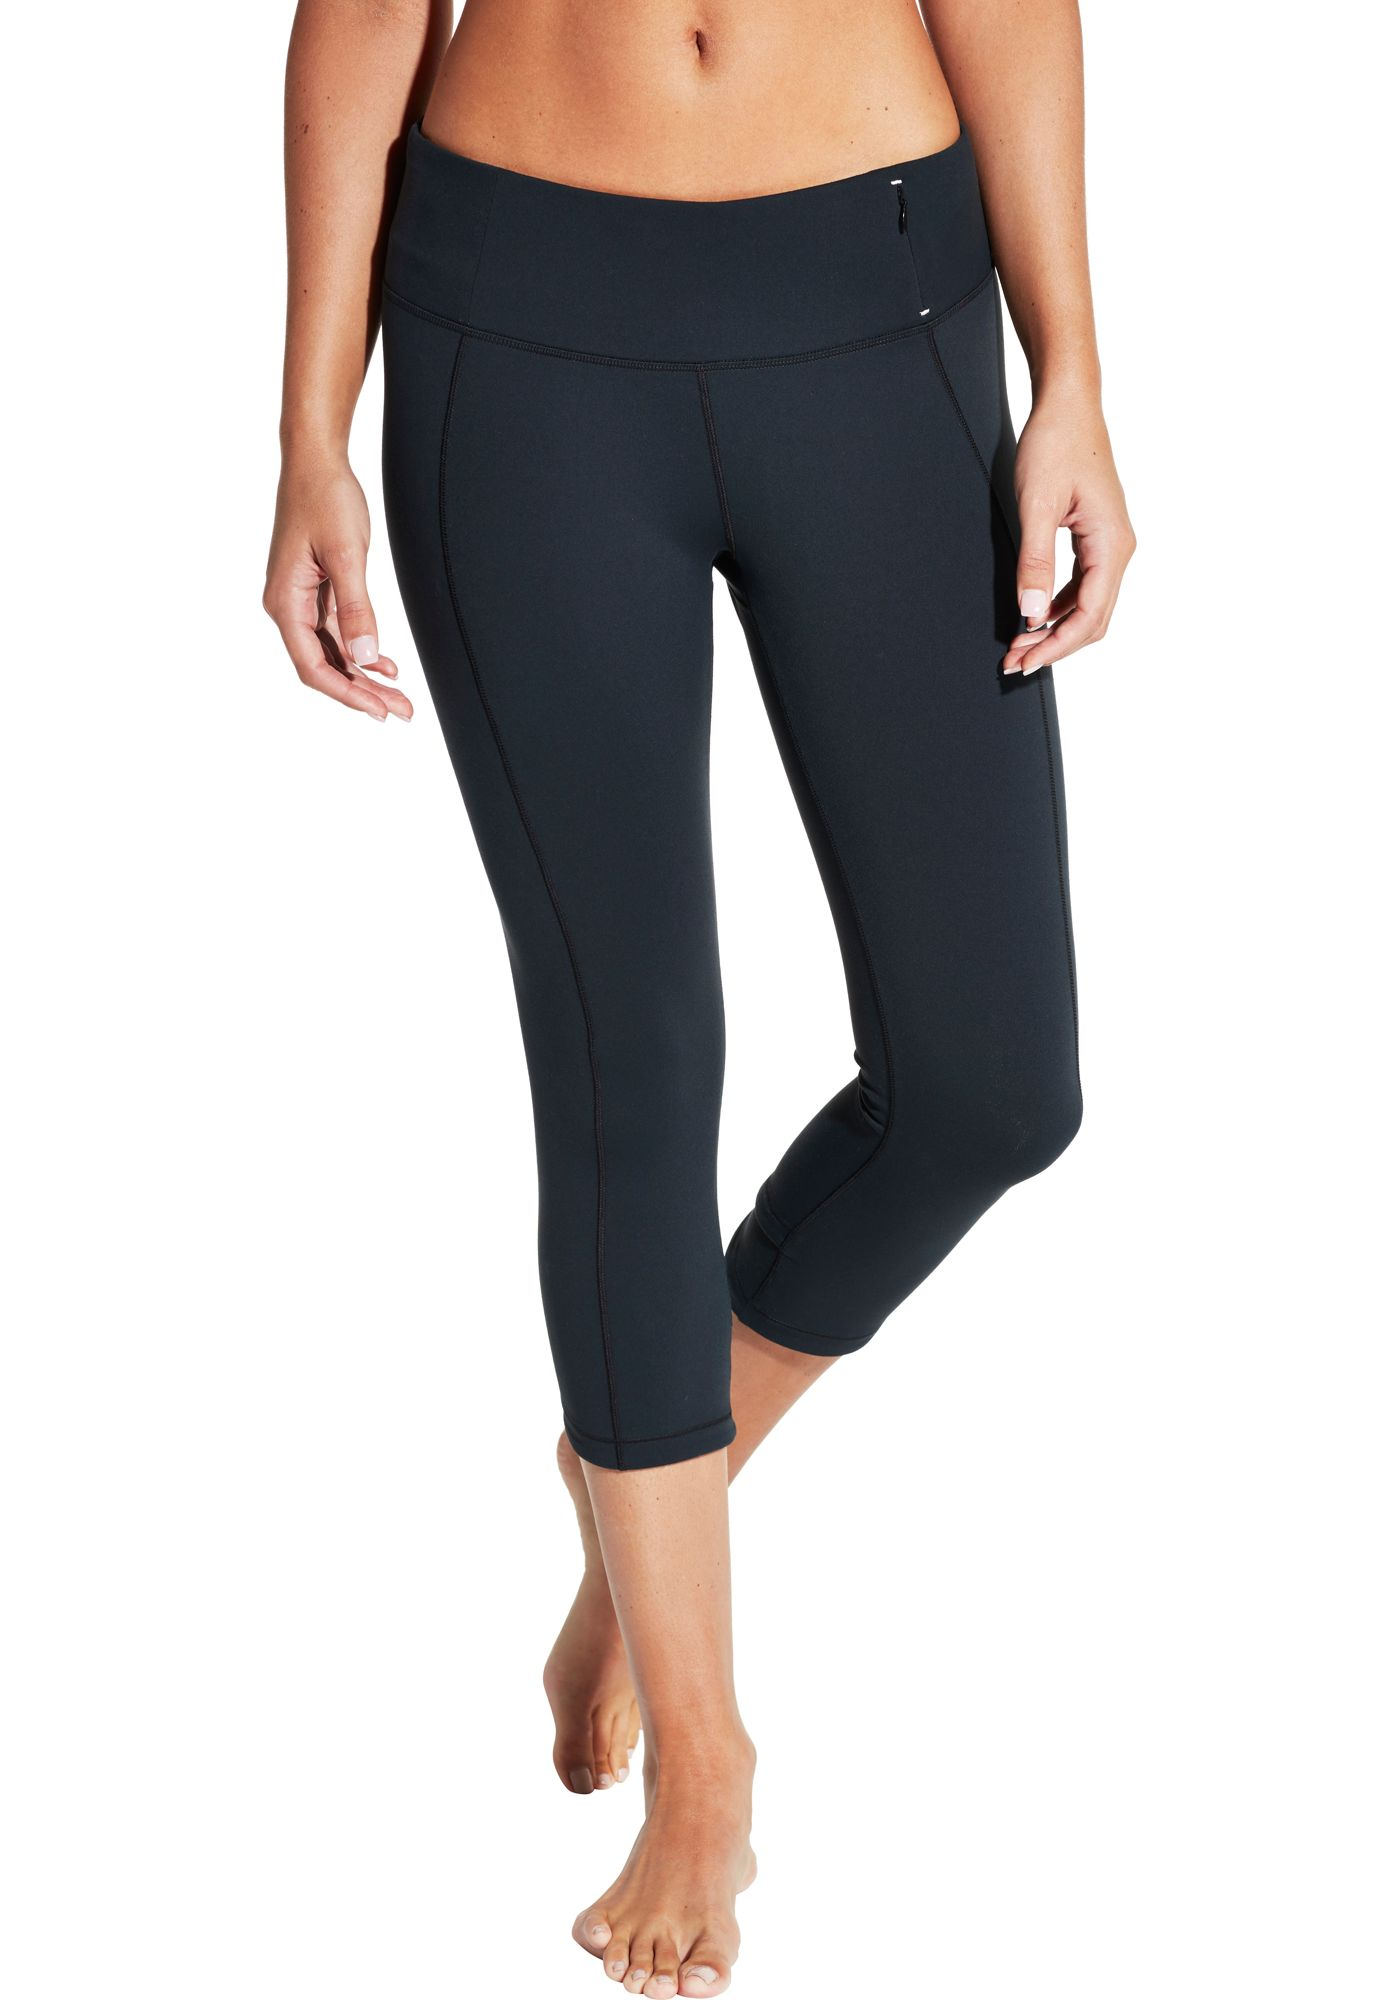 CALIA by Carrie Underwood Women's Essential Crossover Fitted Capris